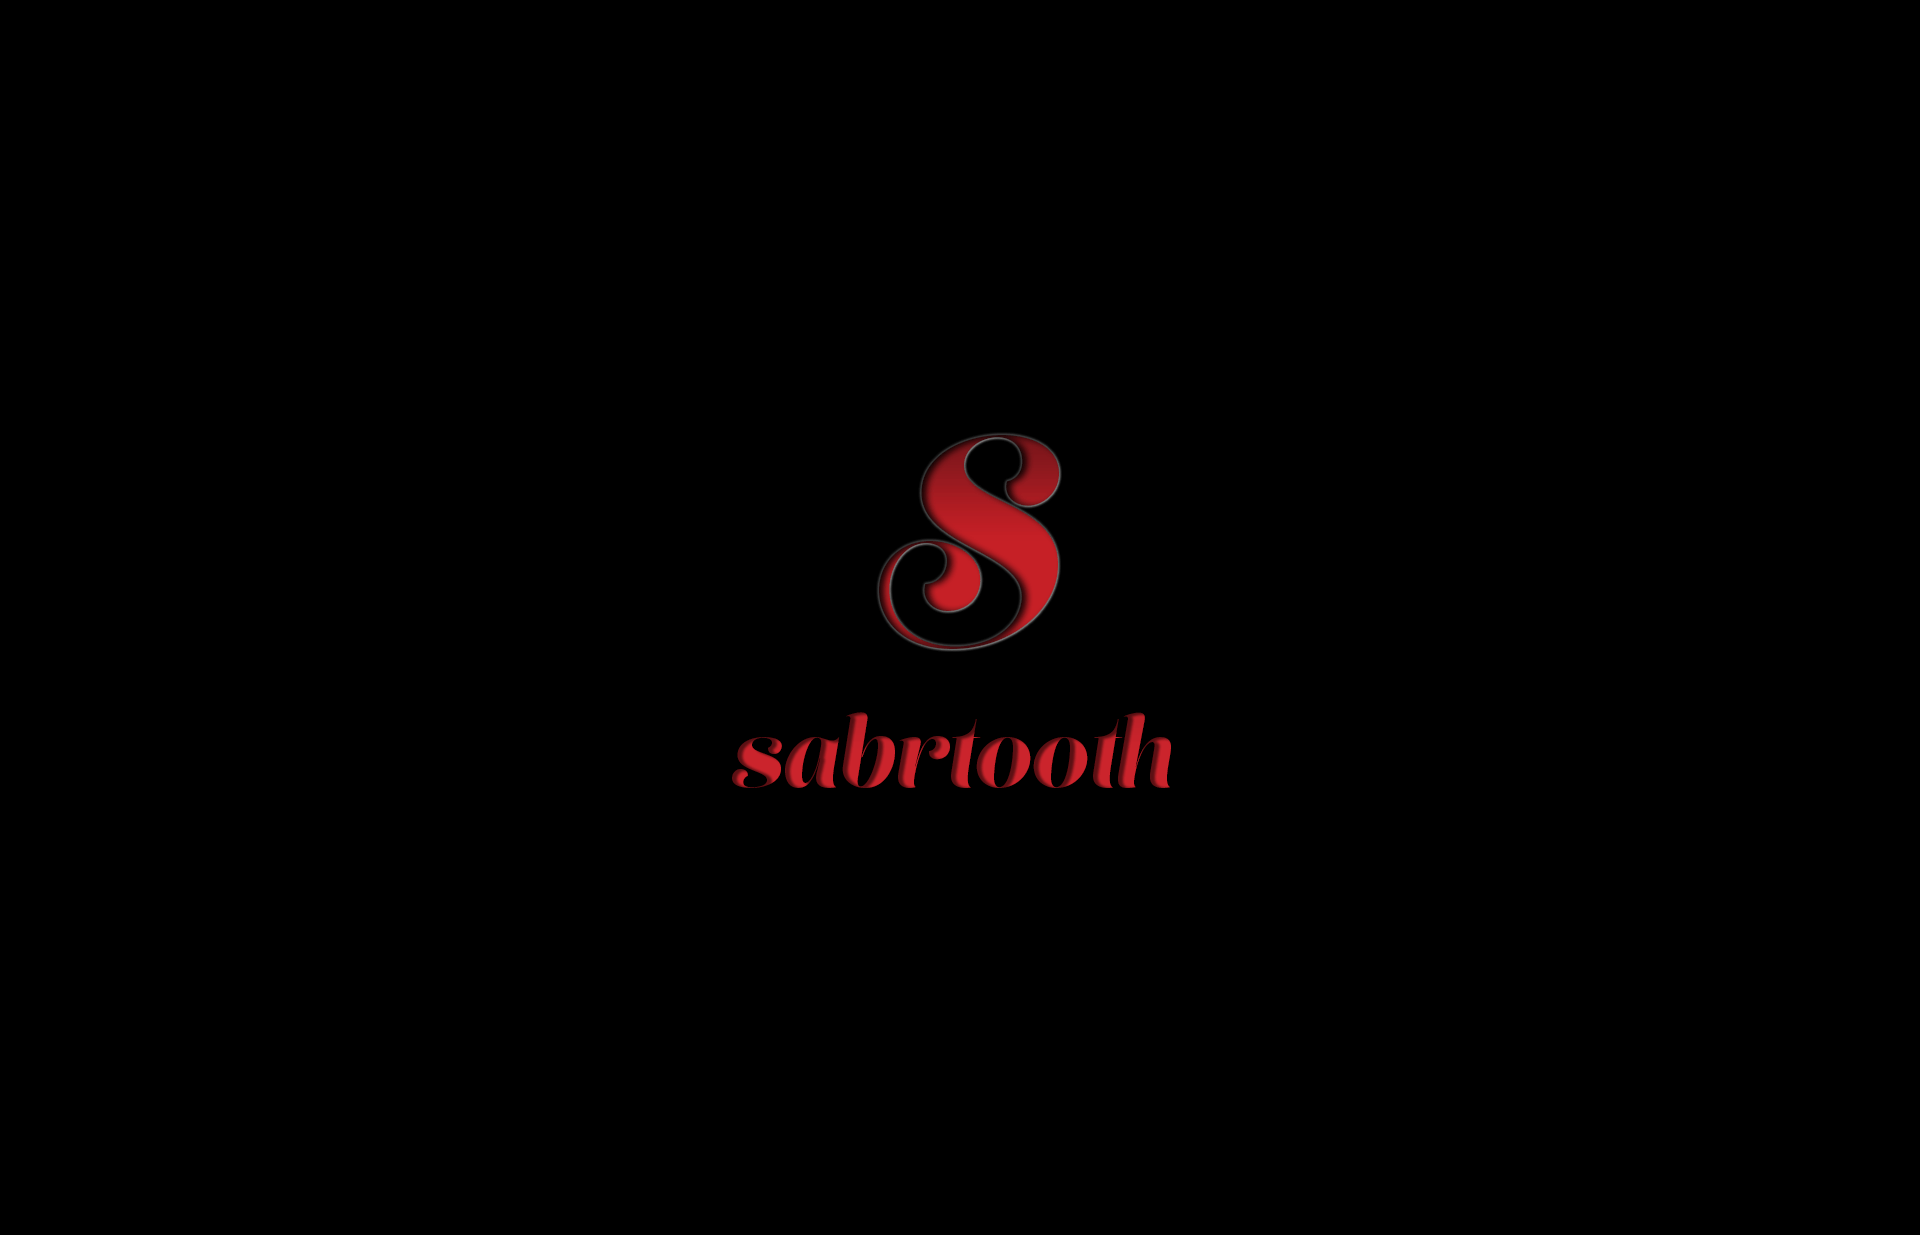 sabrtooth creative agency